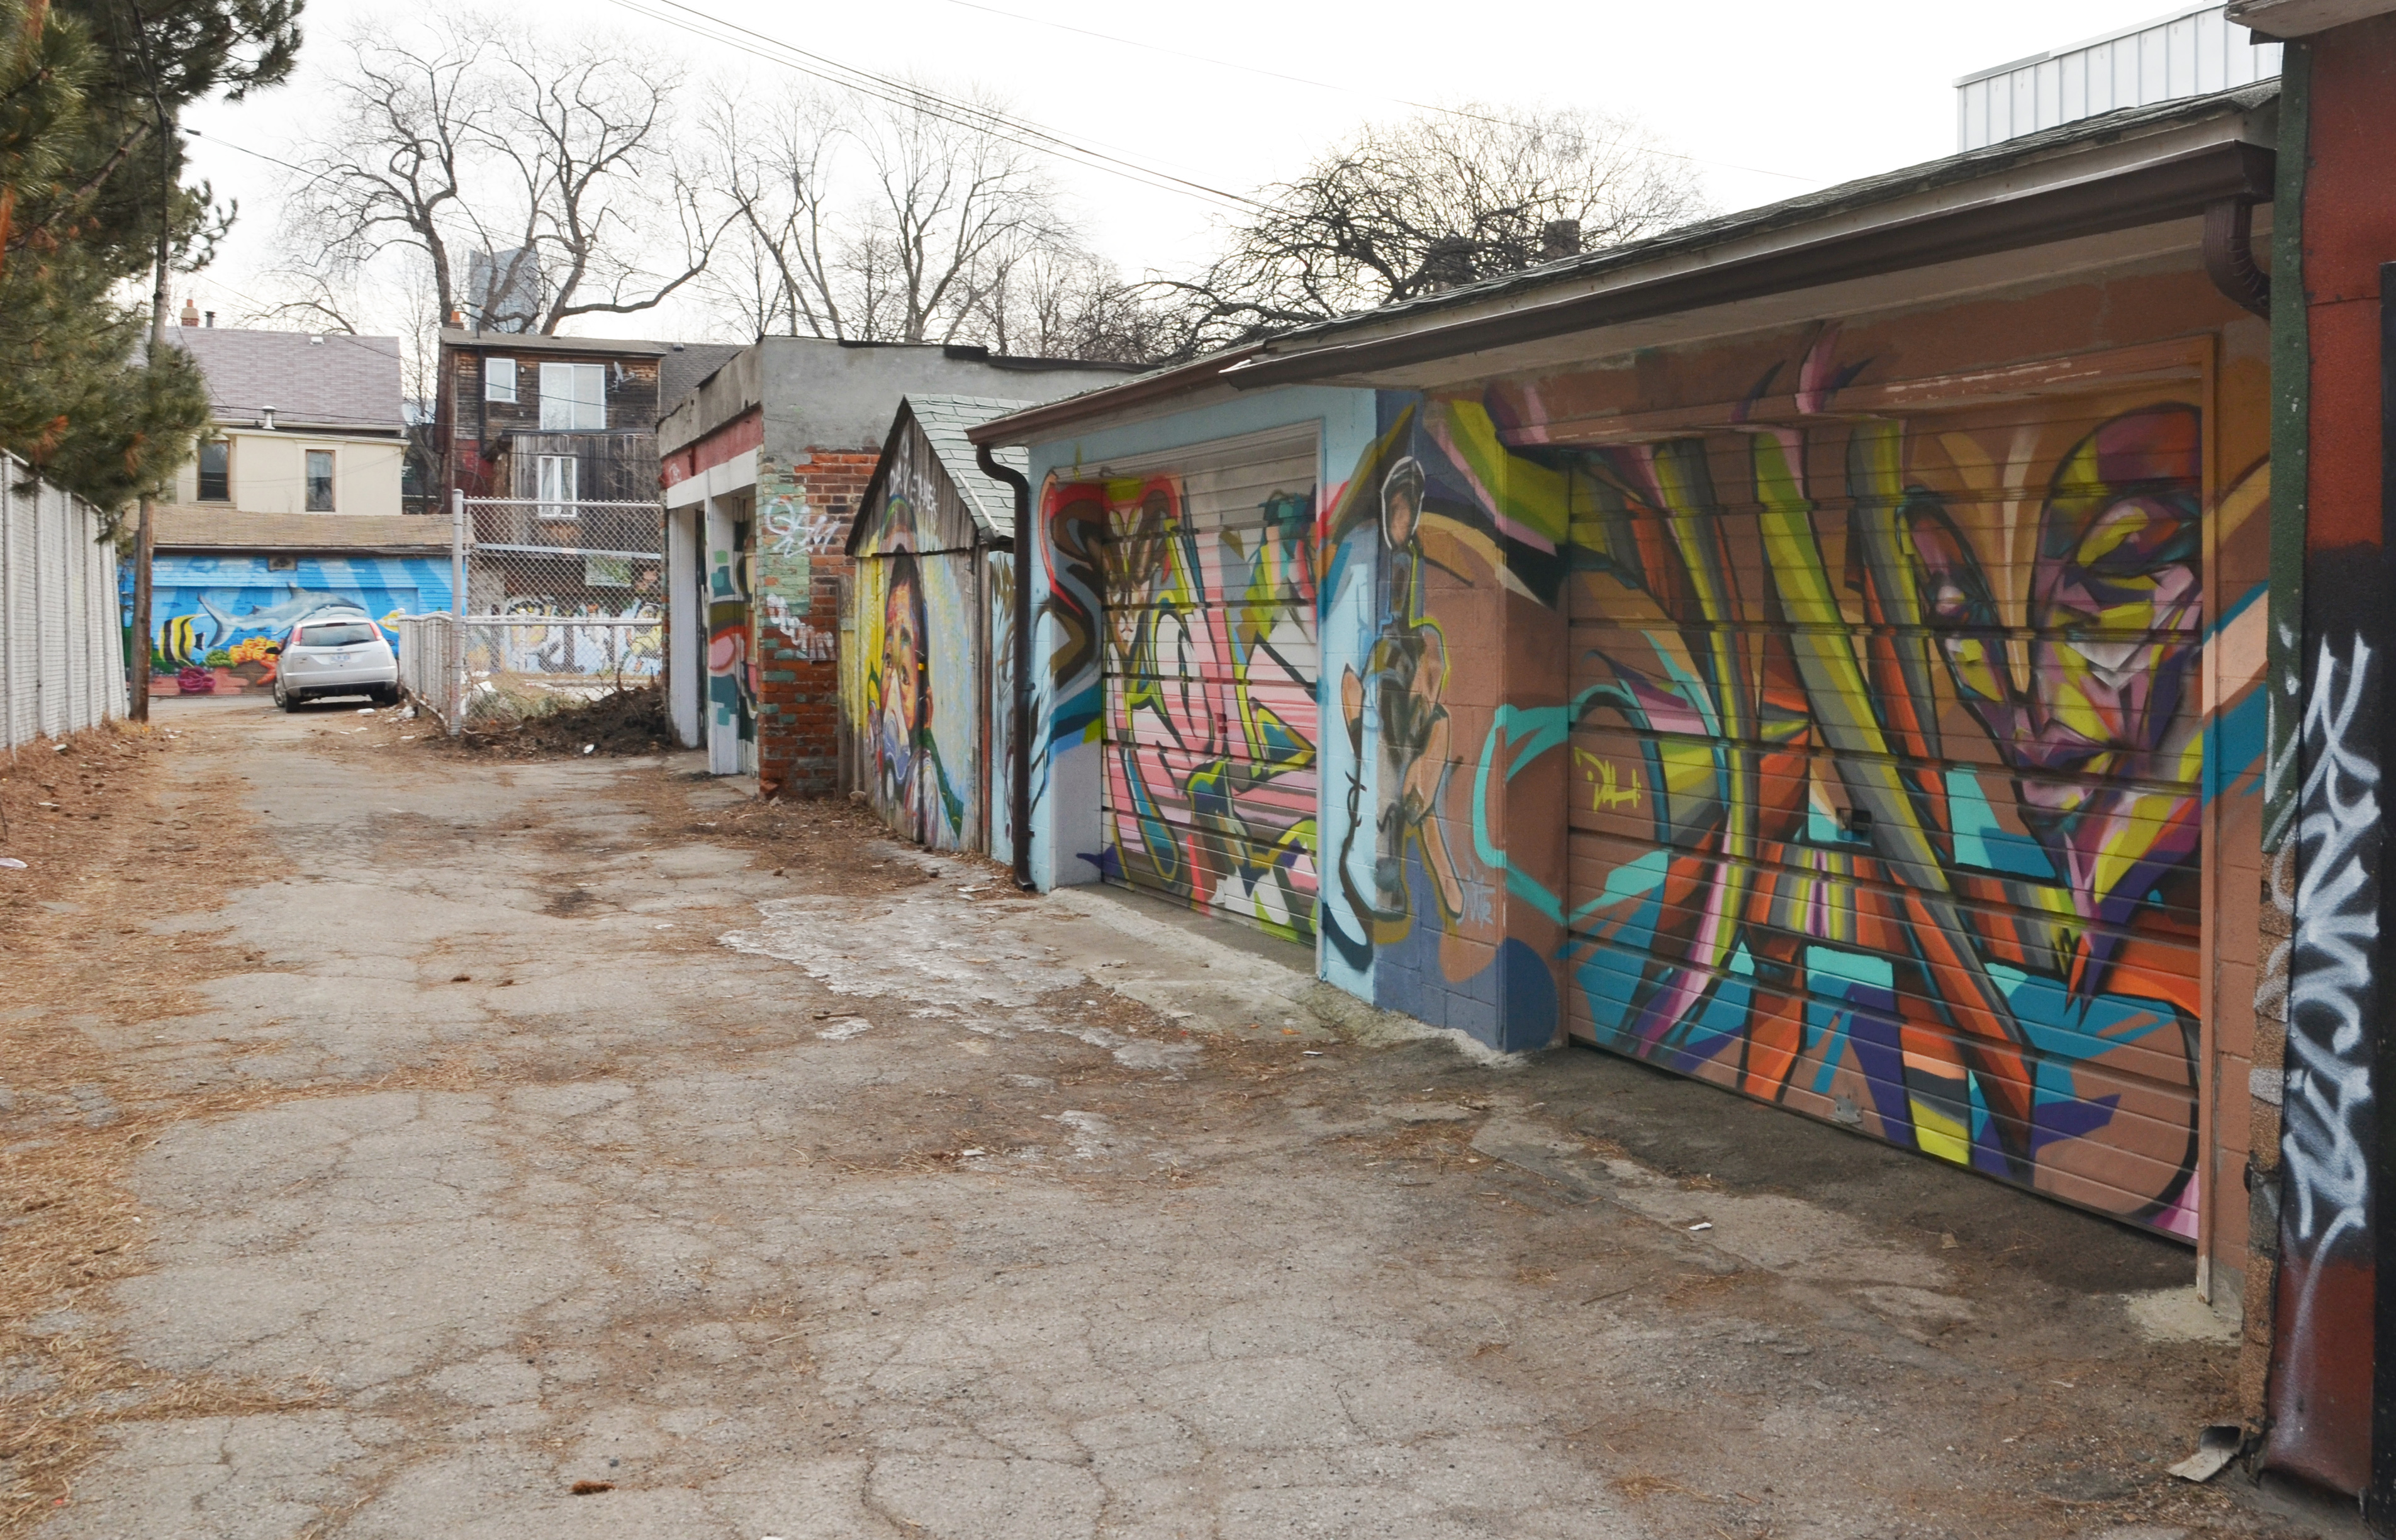 Longer View Of Part Of An Alley Showing The Street Art Covered Garage Doors.